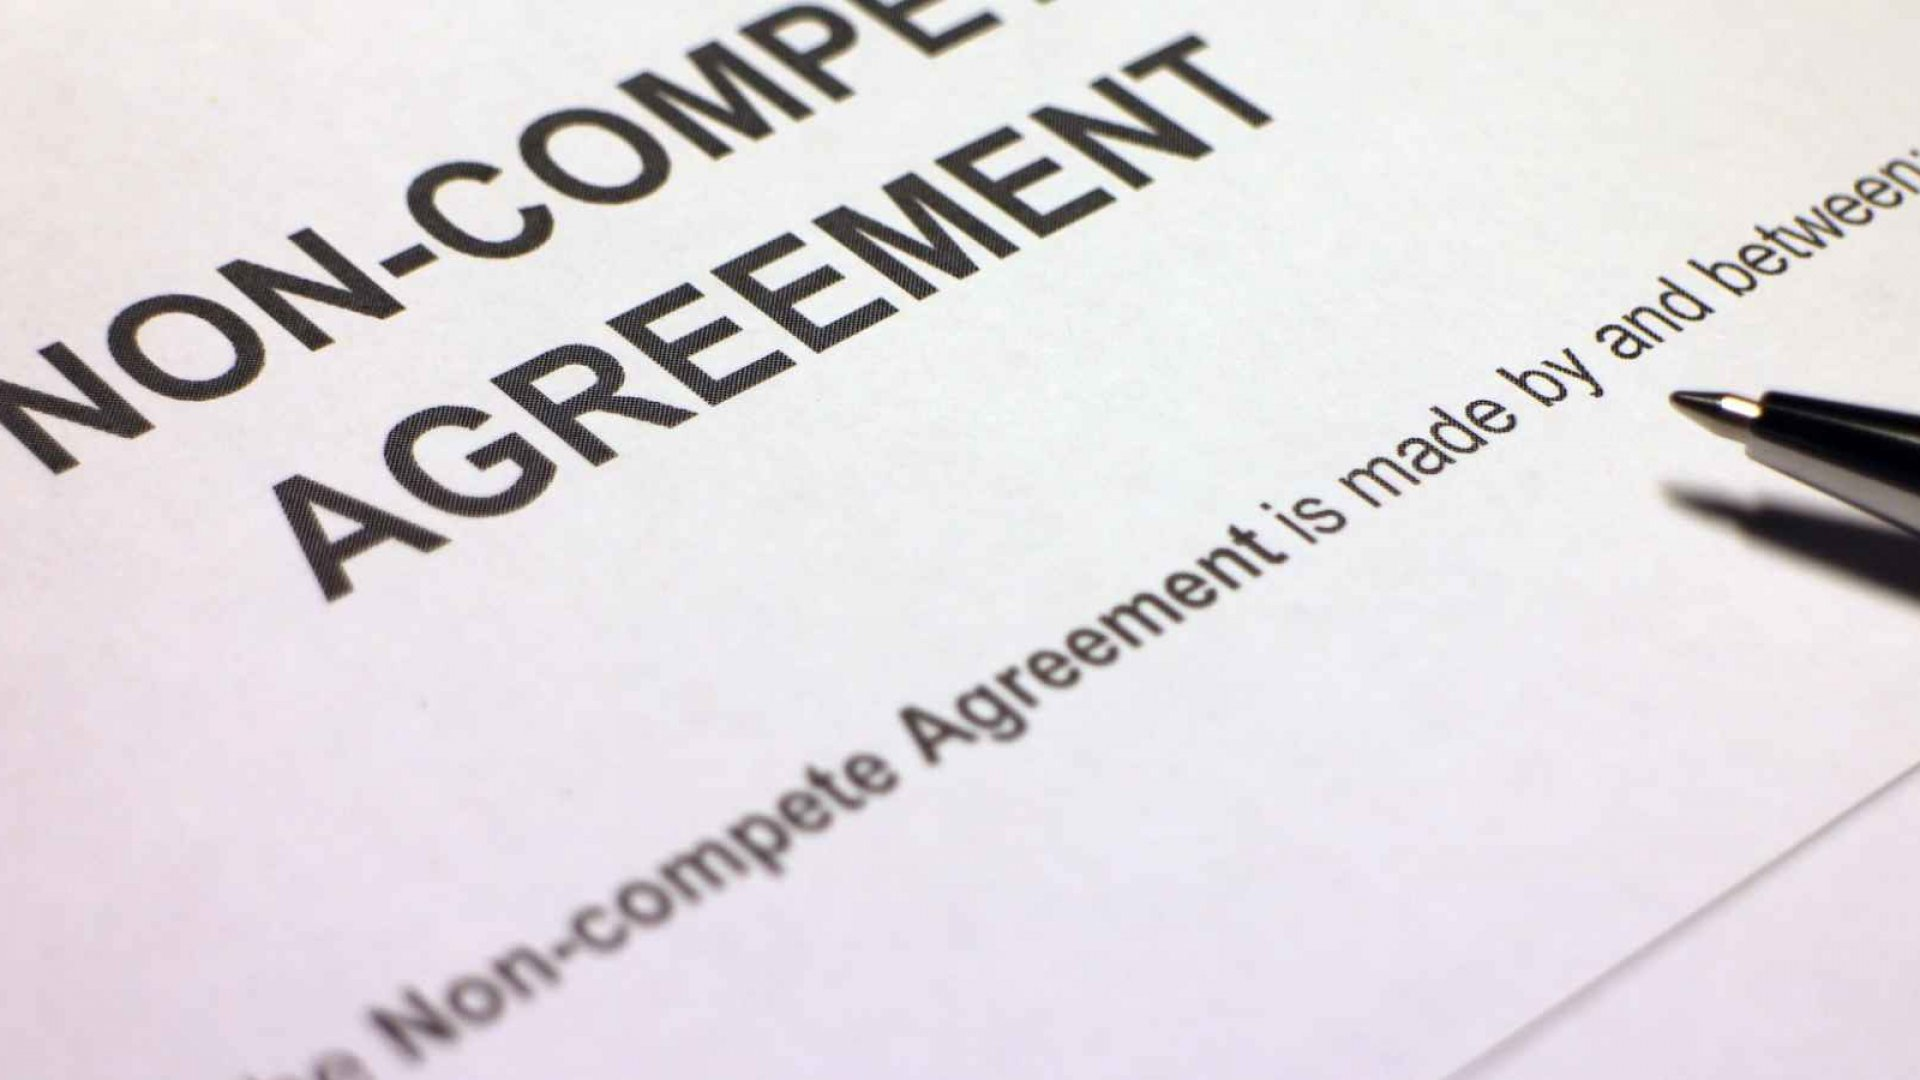 Employee Non-Compete Agreements Come Under Fire in New York